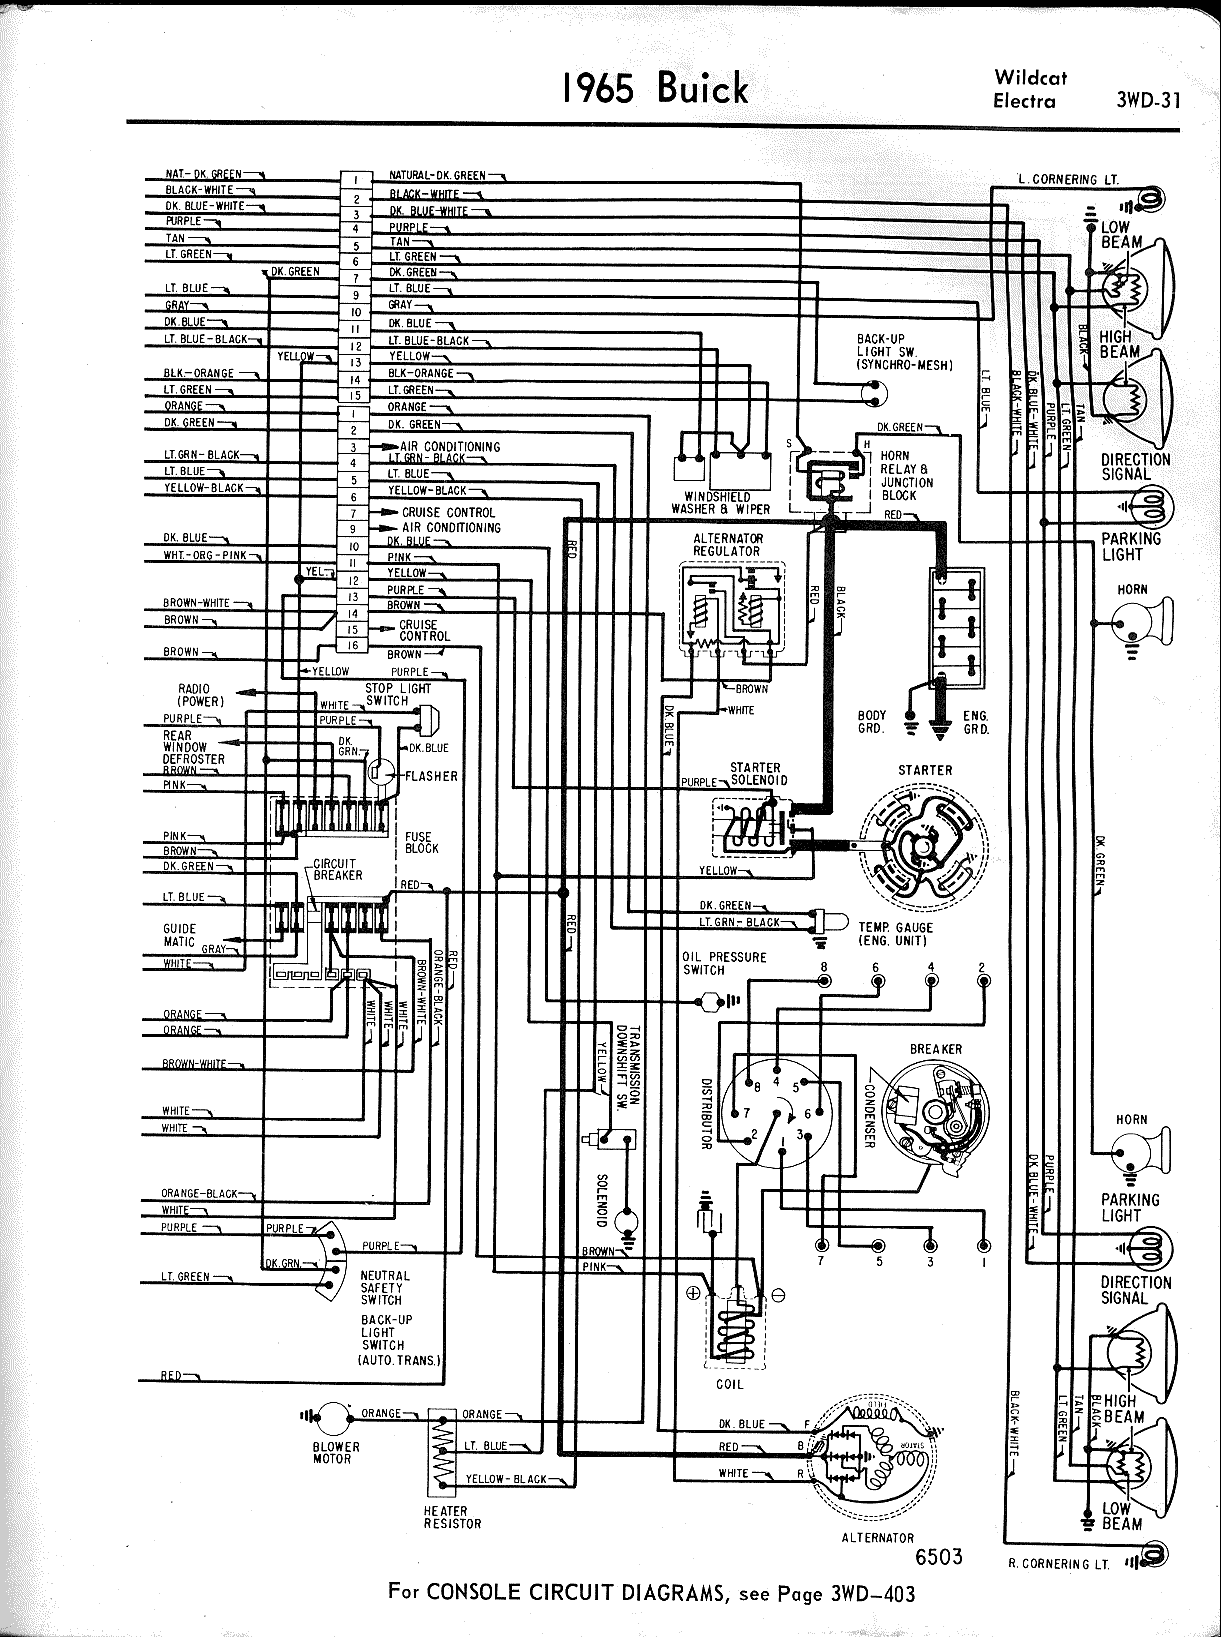 70 Buick Riviera Wiring Diagram Buick Auto Parts Catalog